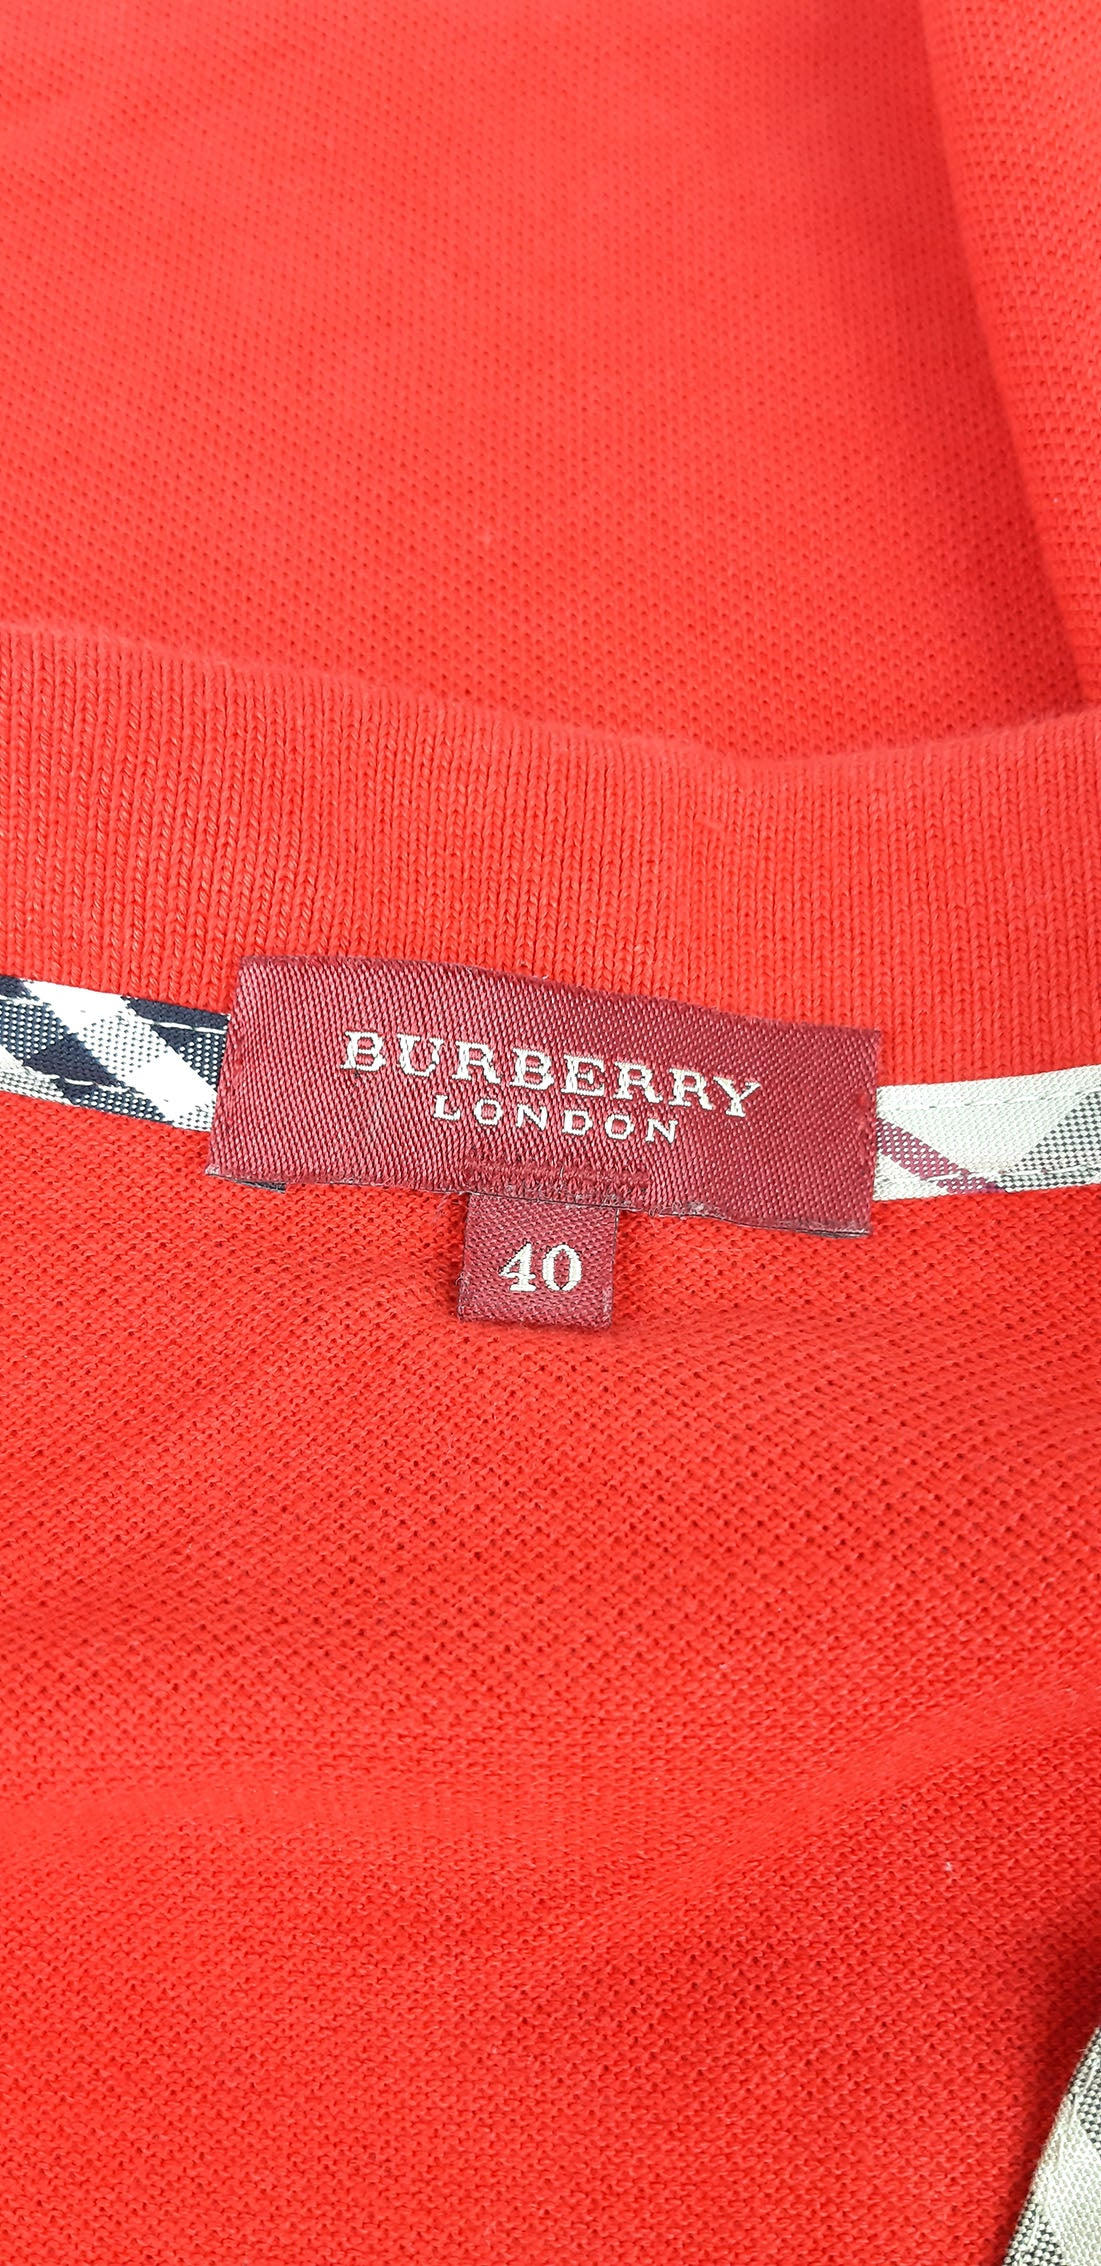 Burberry Sleeveless Polo Shirt in Red and Check Pattern Details Size 40 (EU)